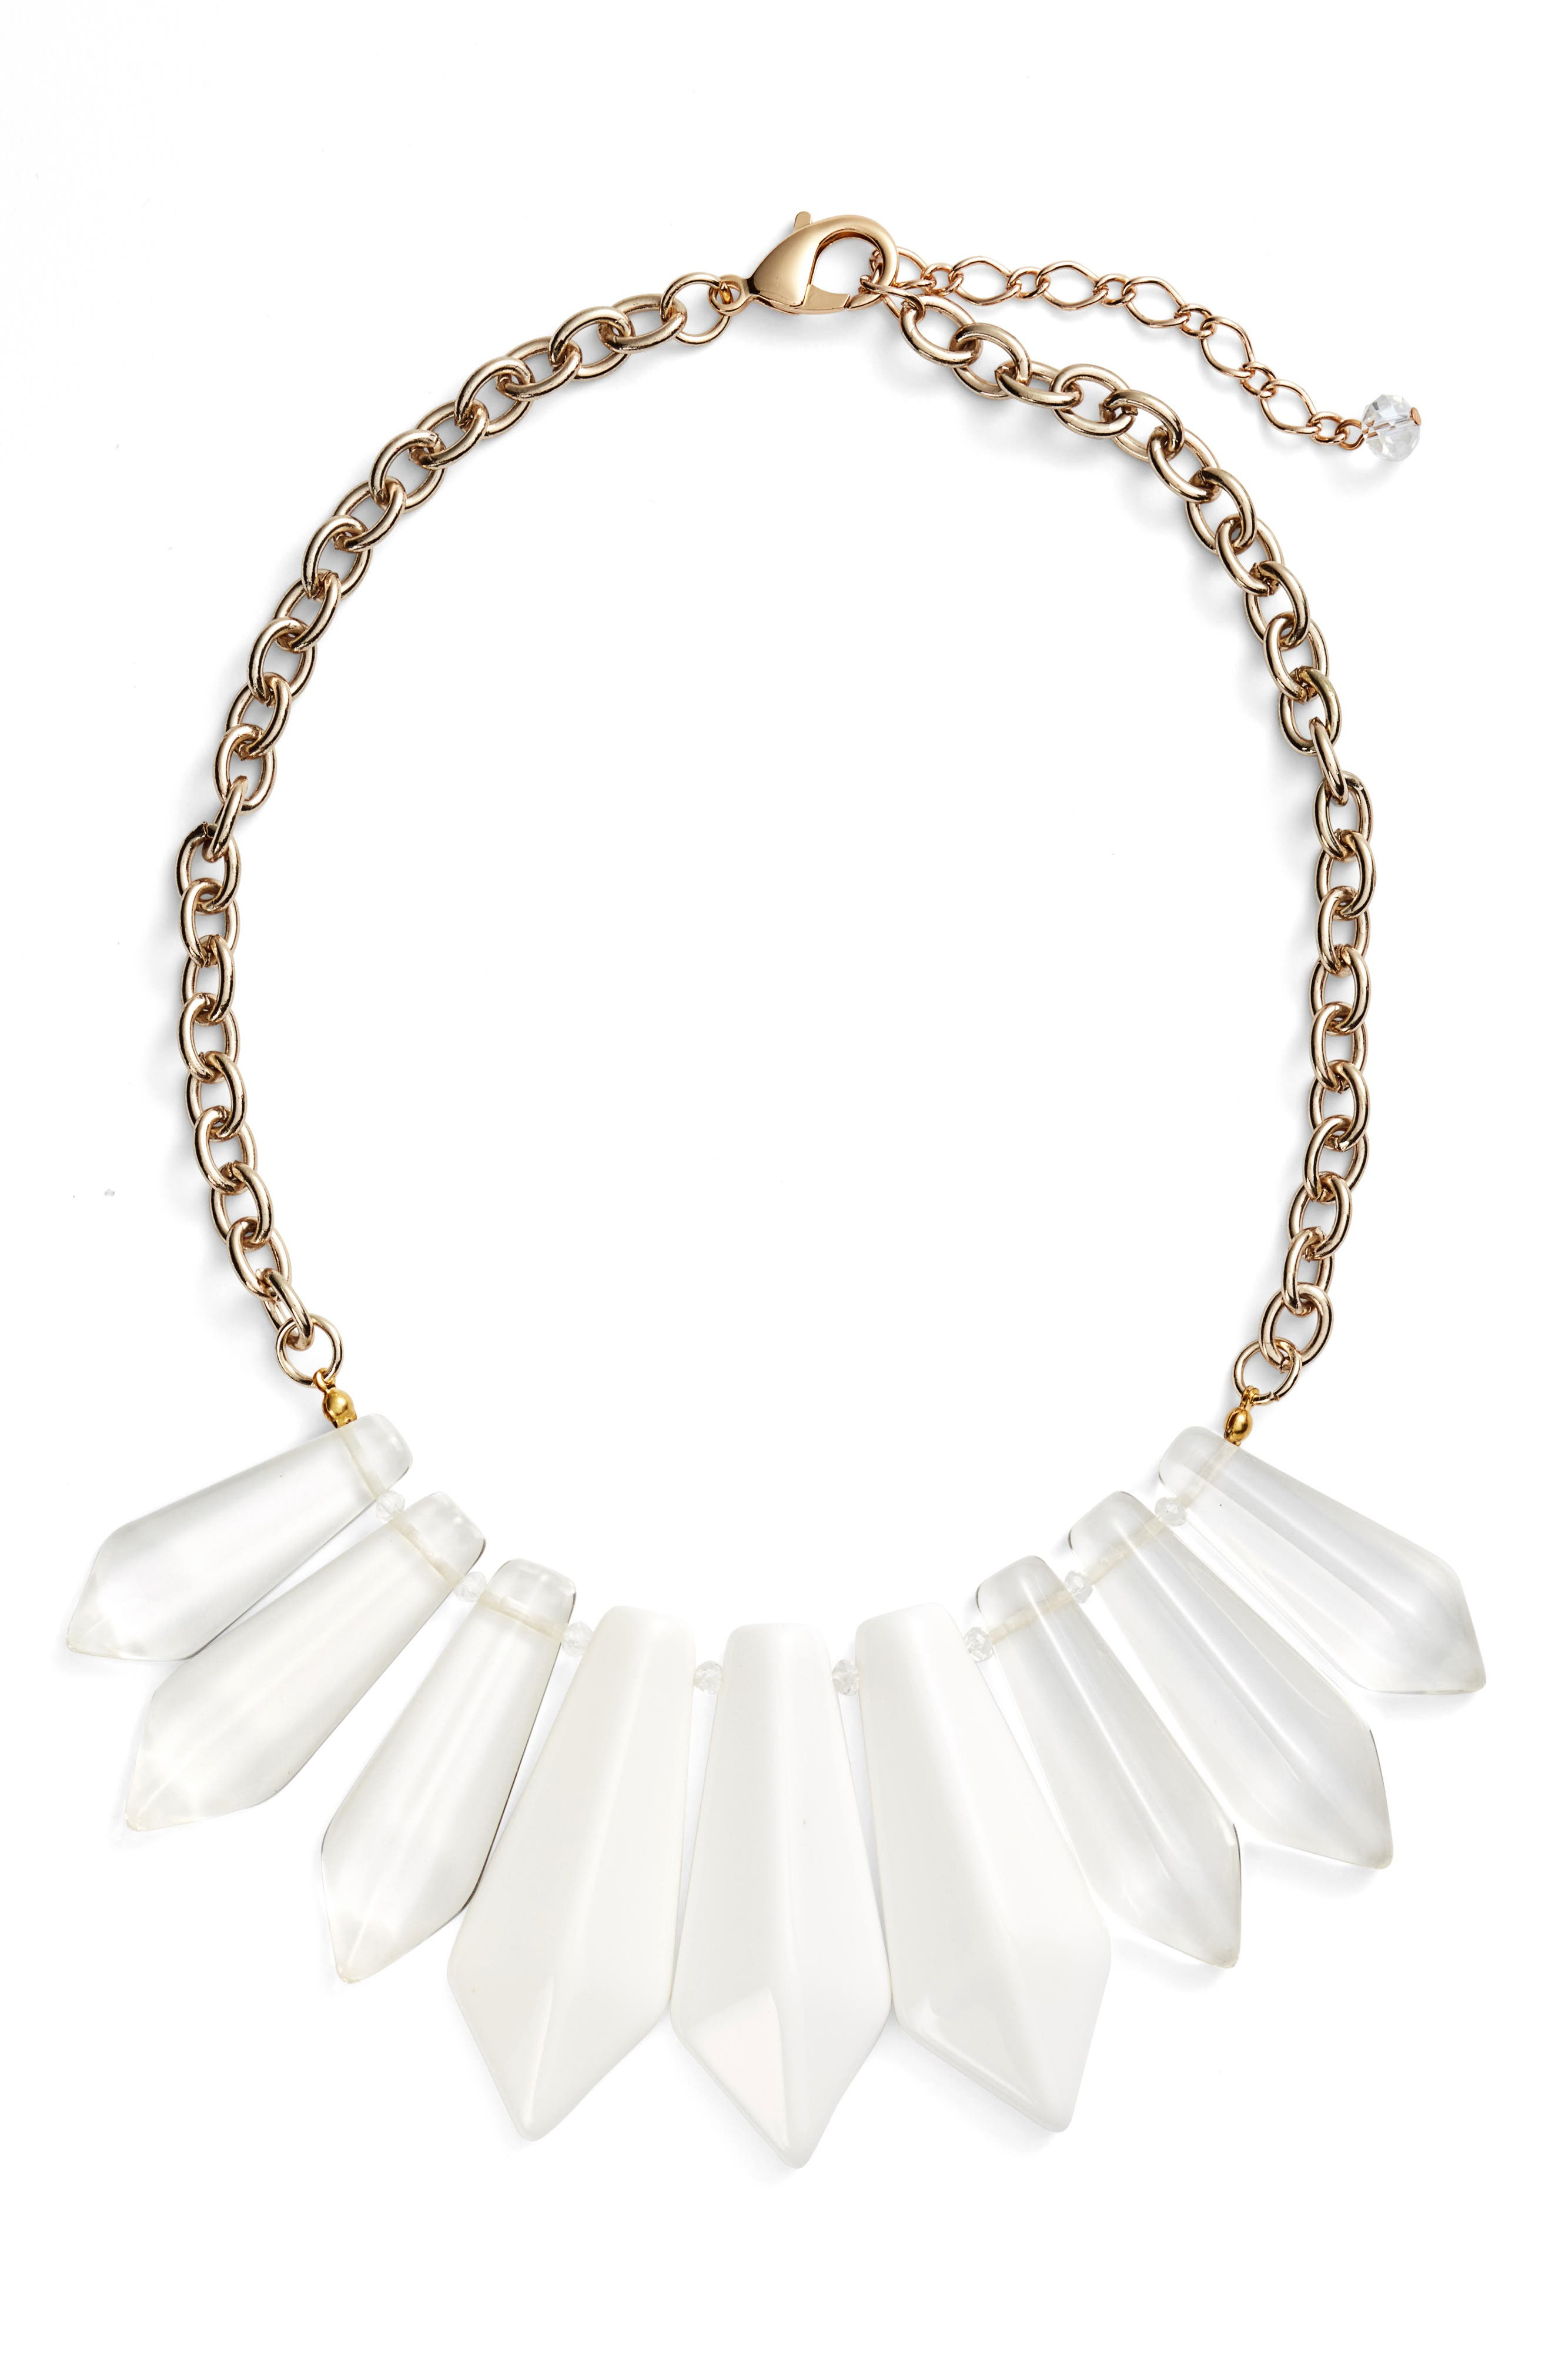 Spiked Resin Statement Necklace,                         Main,                         color, White/ Clear